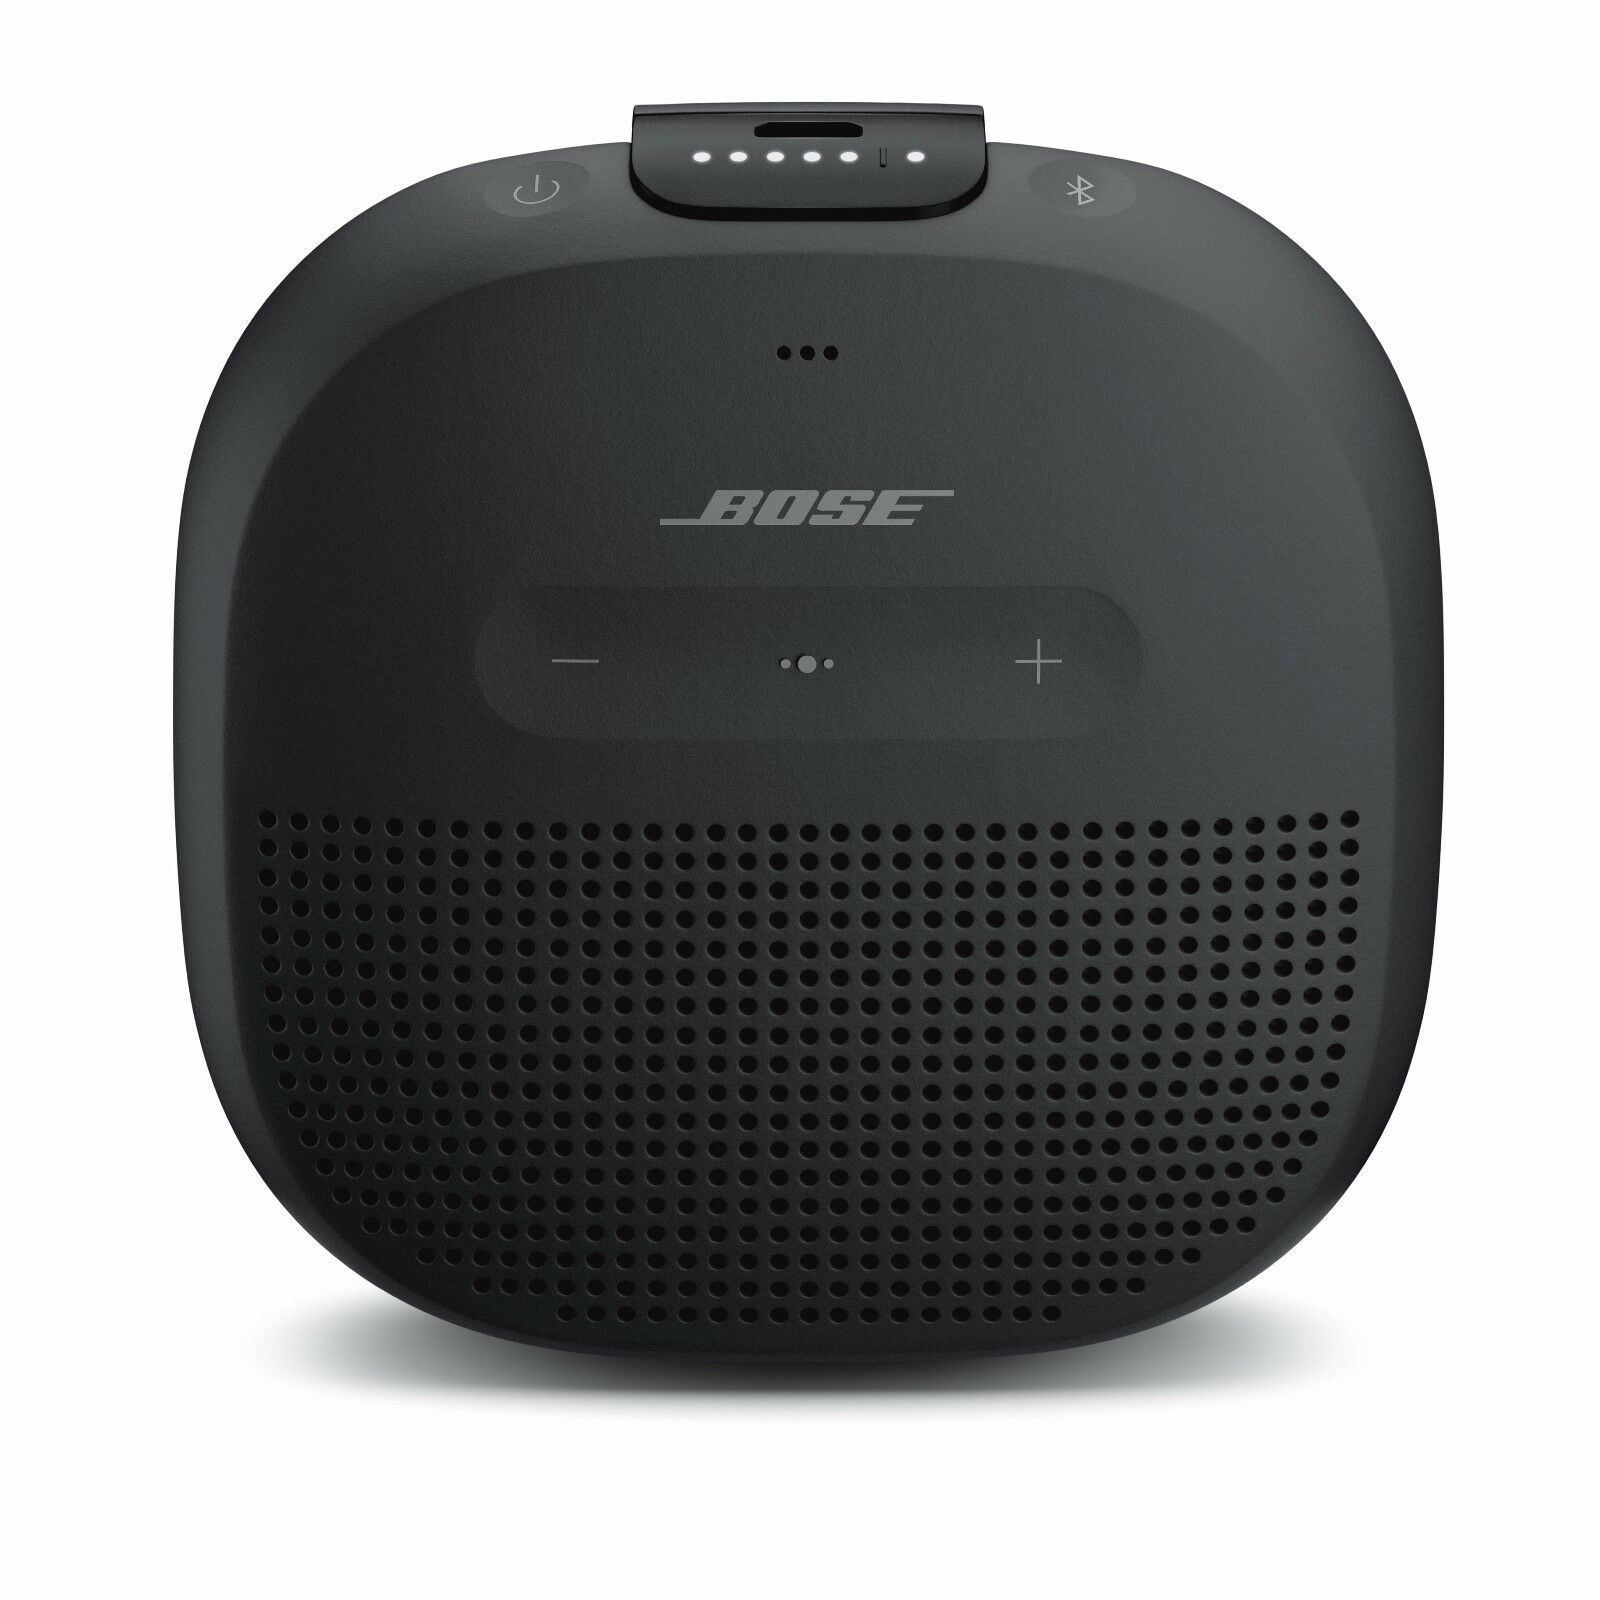 bose 415859. bose soundlink micro bluetooth speaker - wireless portable sound black bose 415859 e